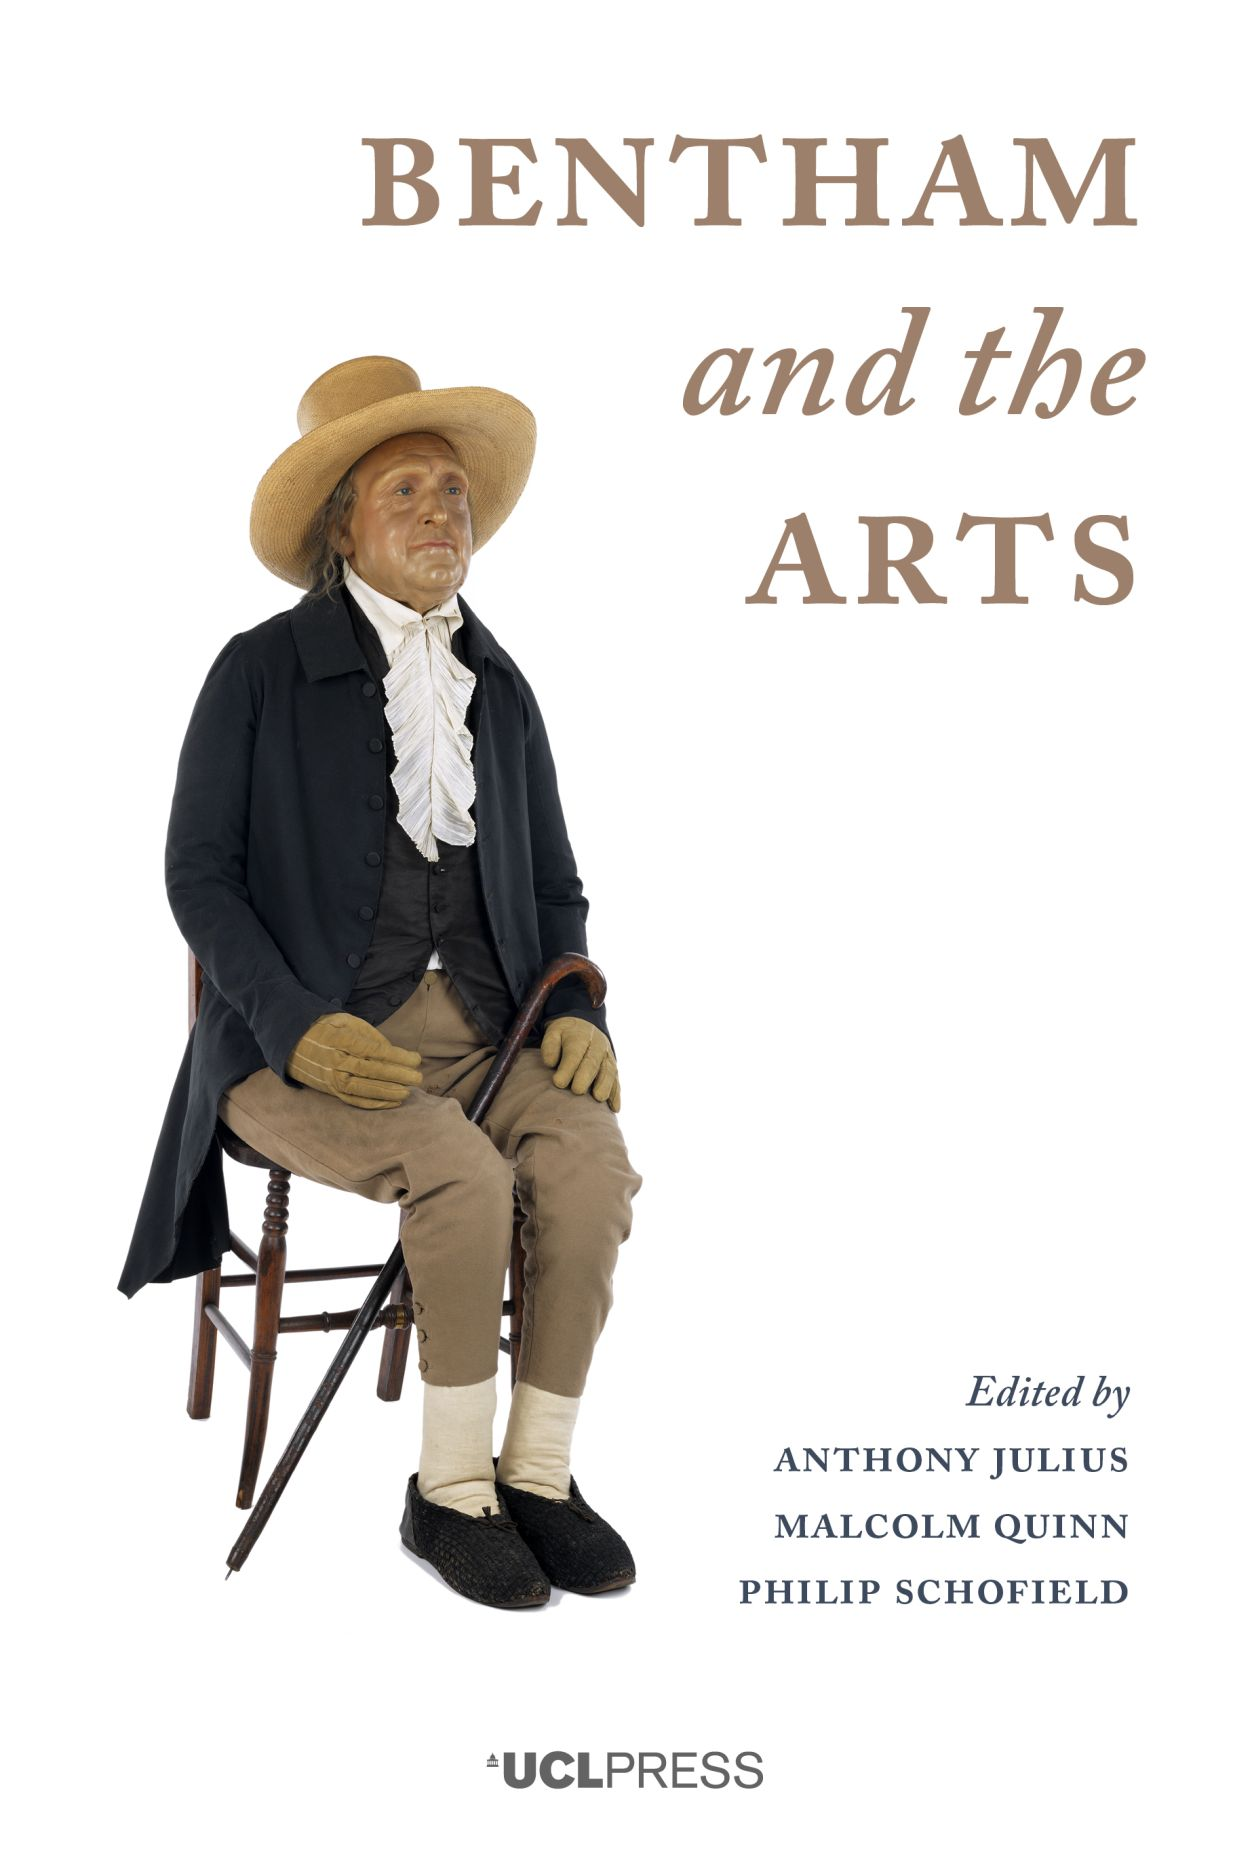 Bentham and the Arts